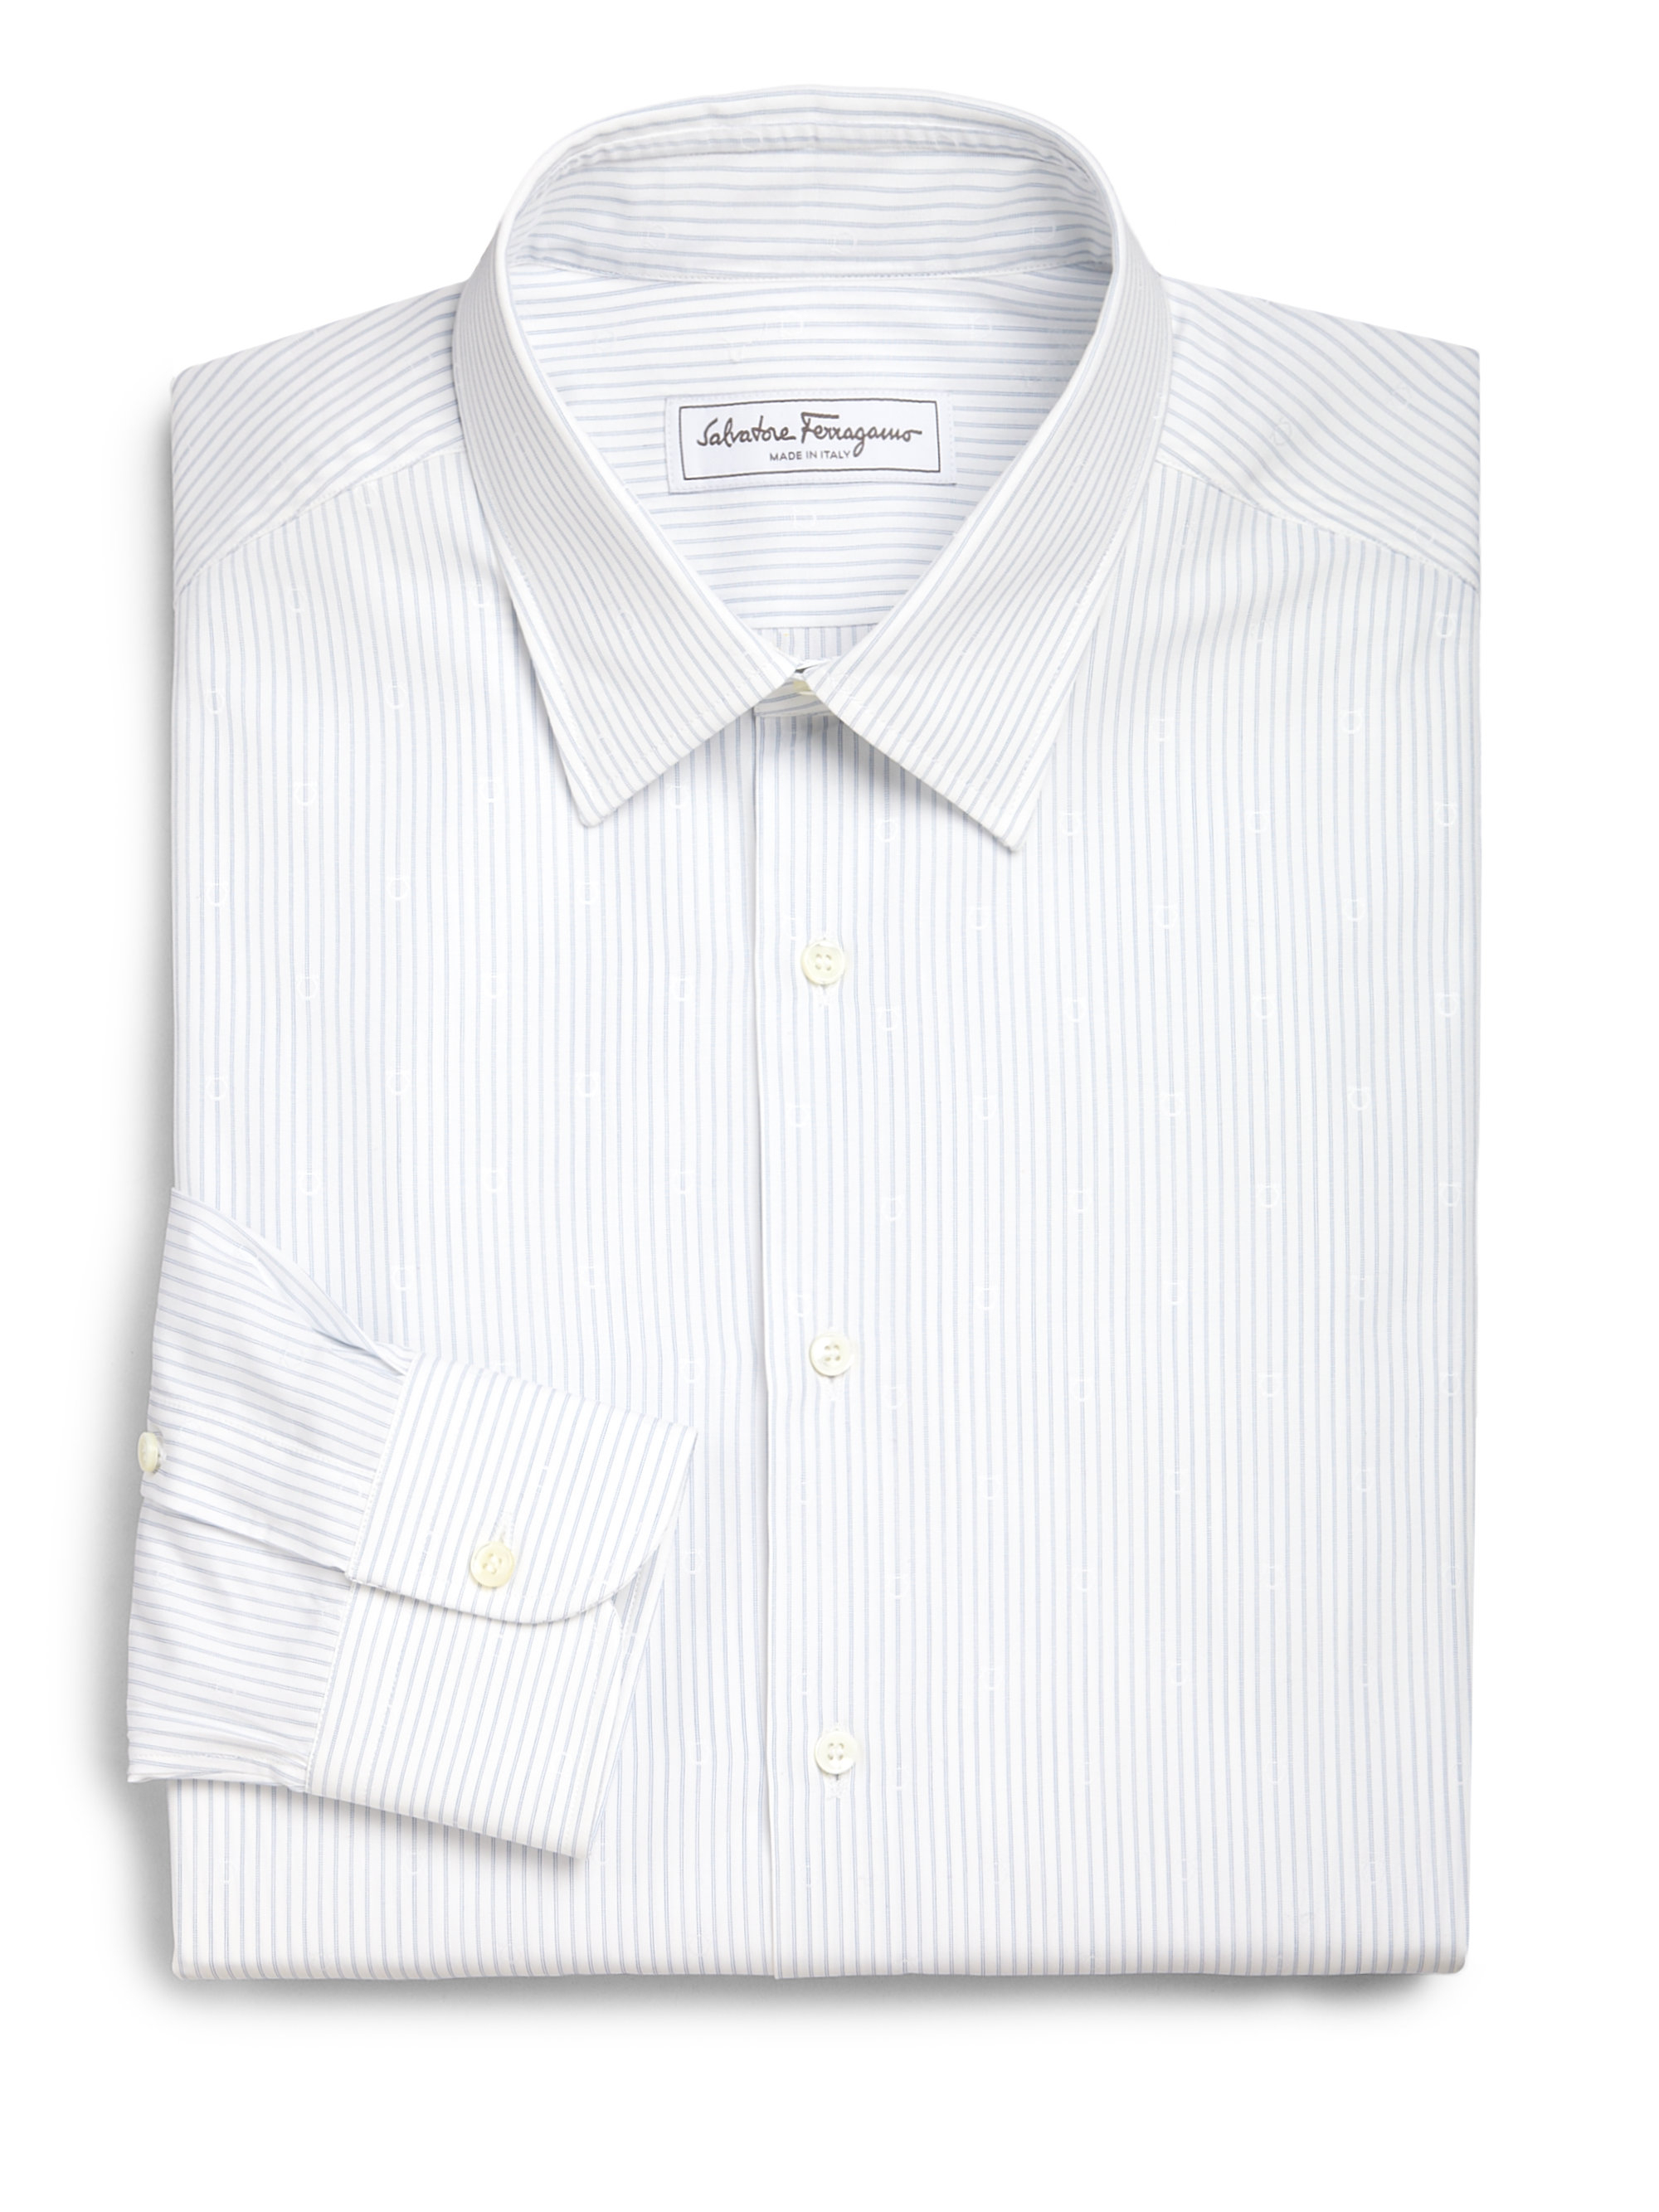 Ferragamo striped cotton dress shirt in white for men lyst for White non iron dress shirts